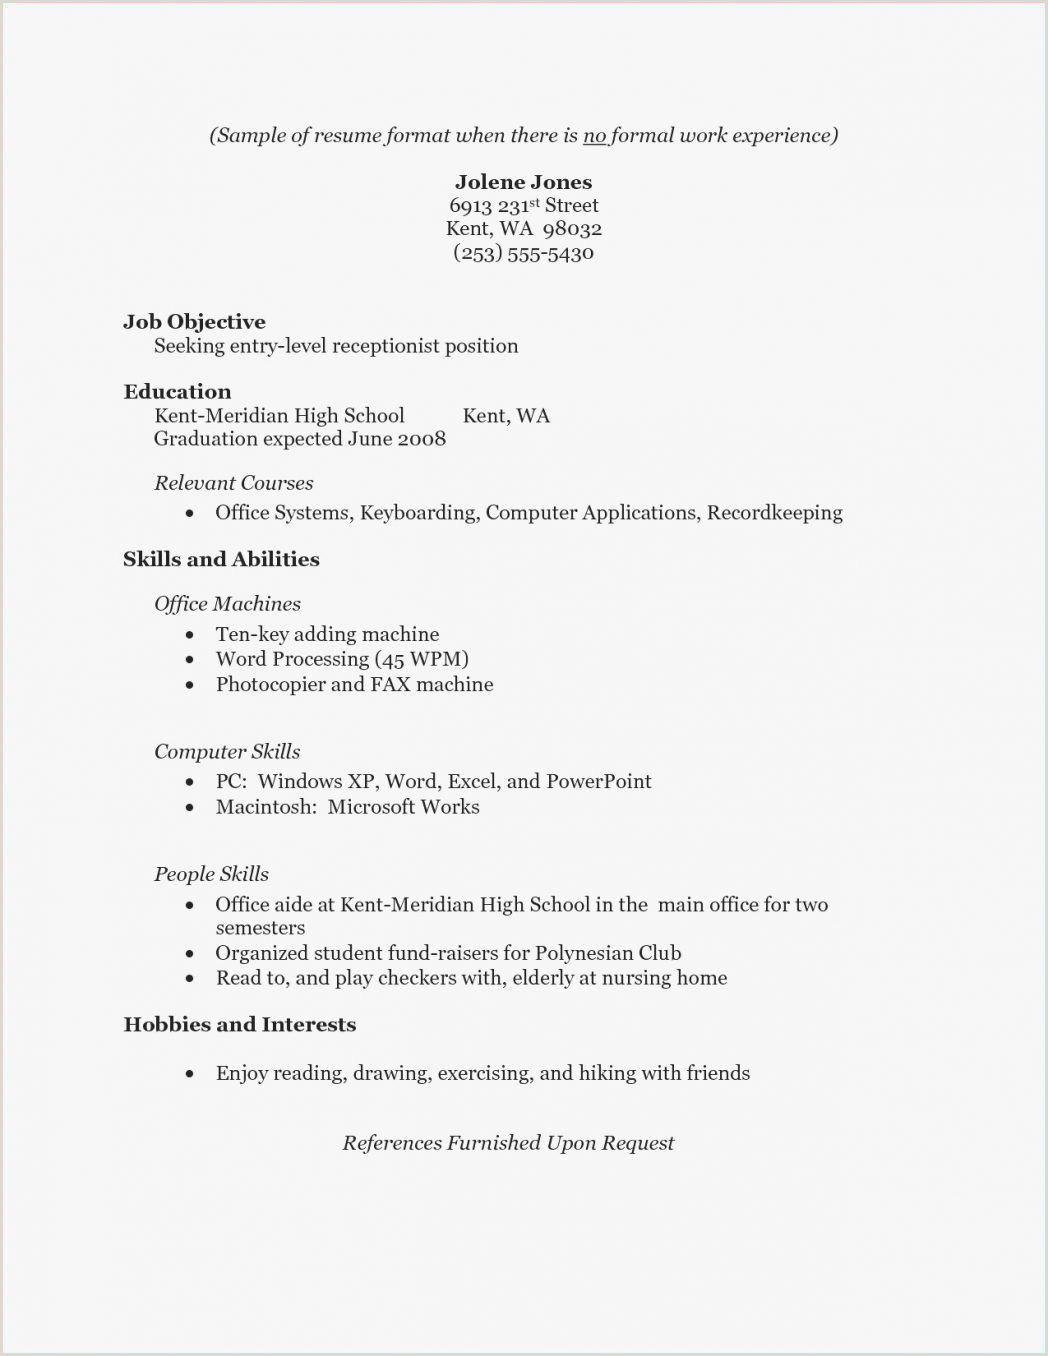 Entry Level Dental assistant Resume Objective Resume for Receptionist with No Experience Unique Nanny